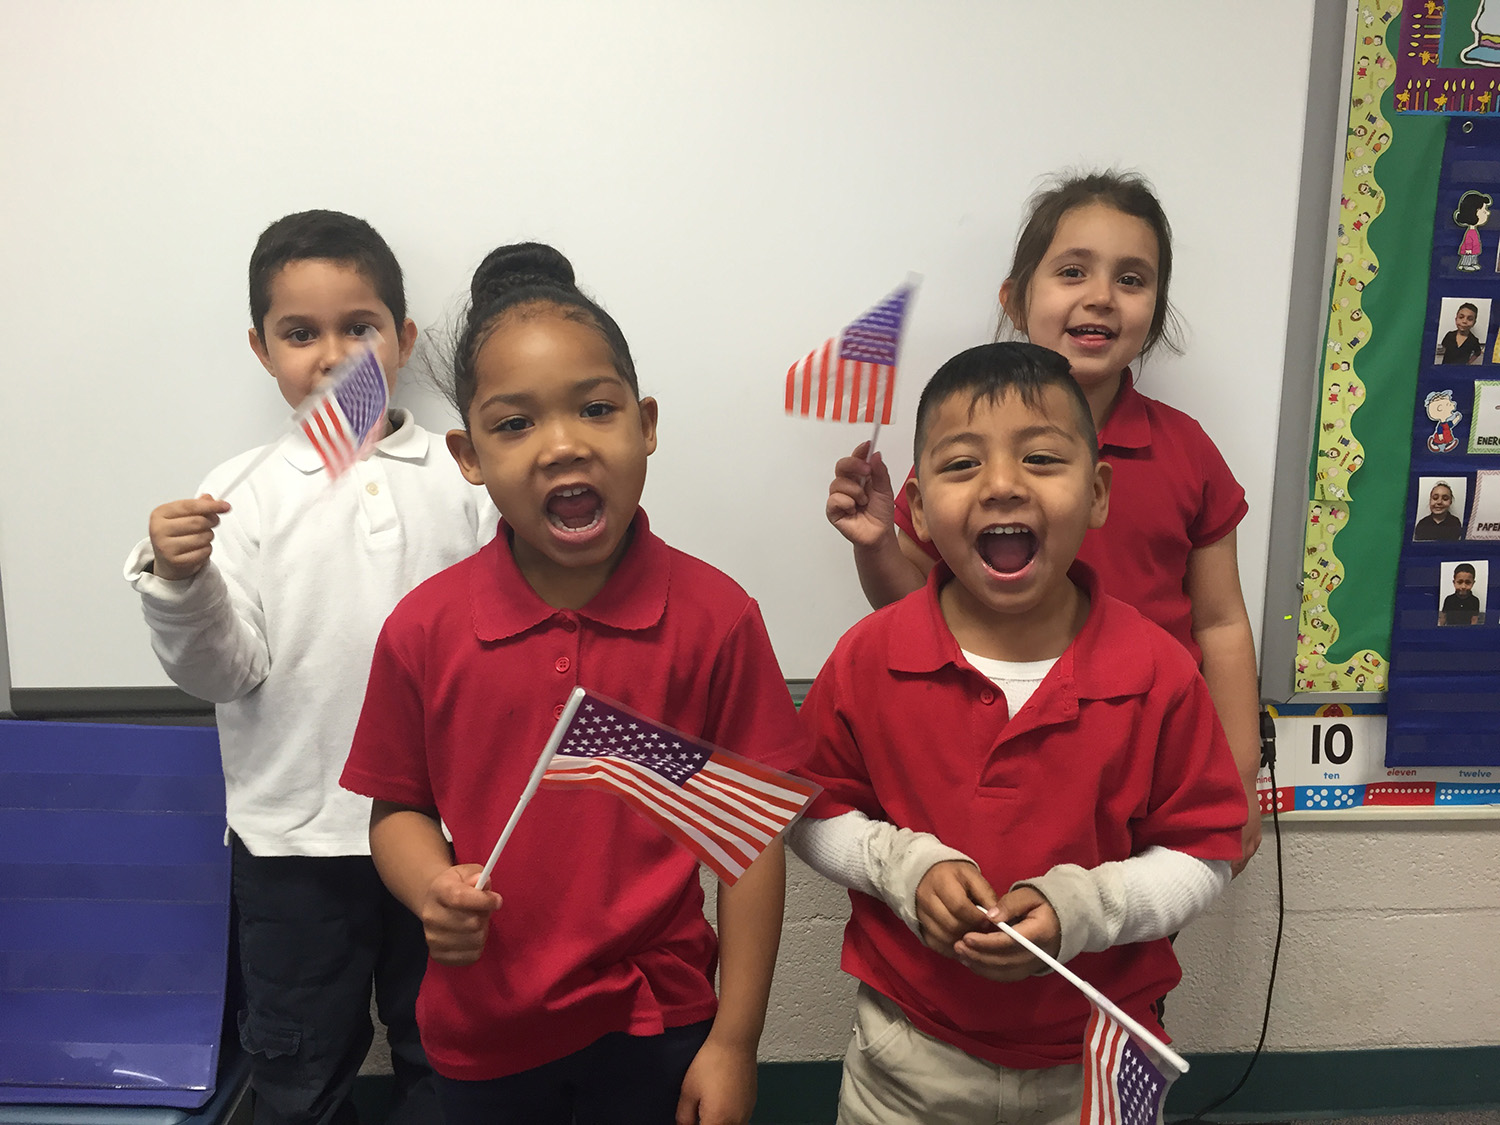 Kids singing and waving American flags